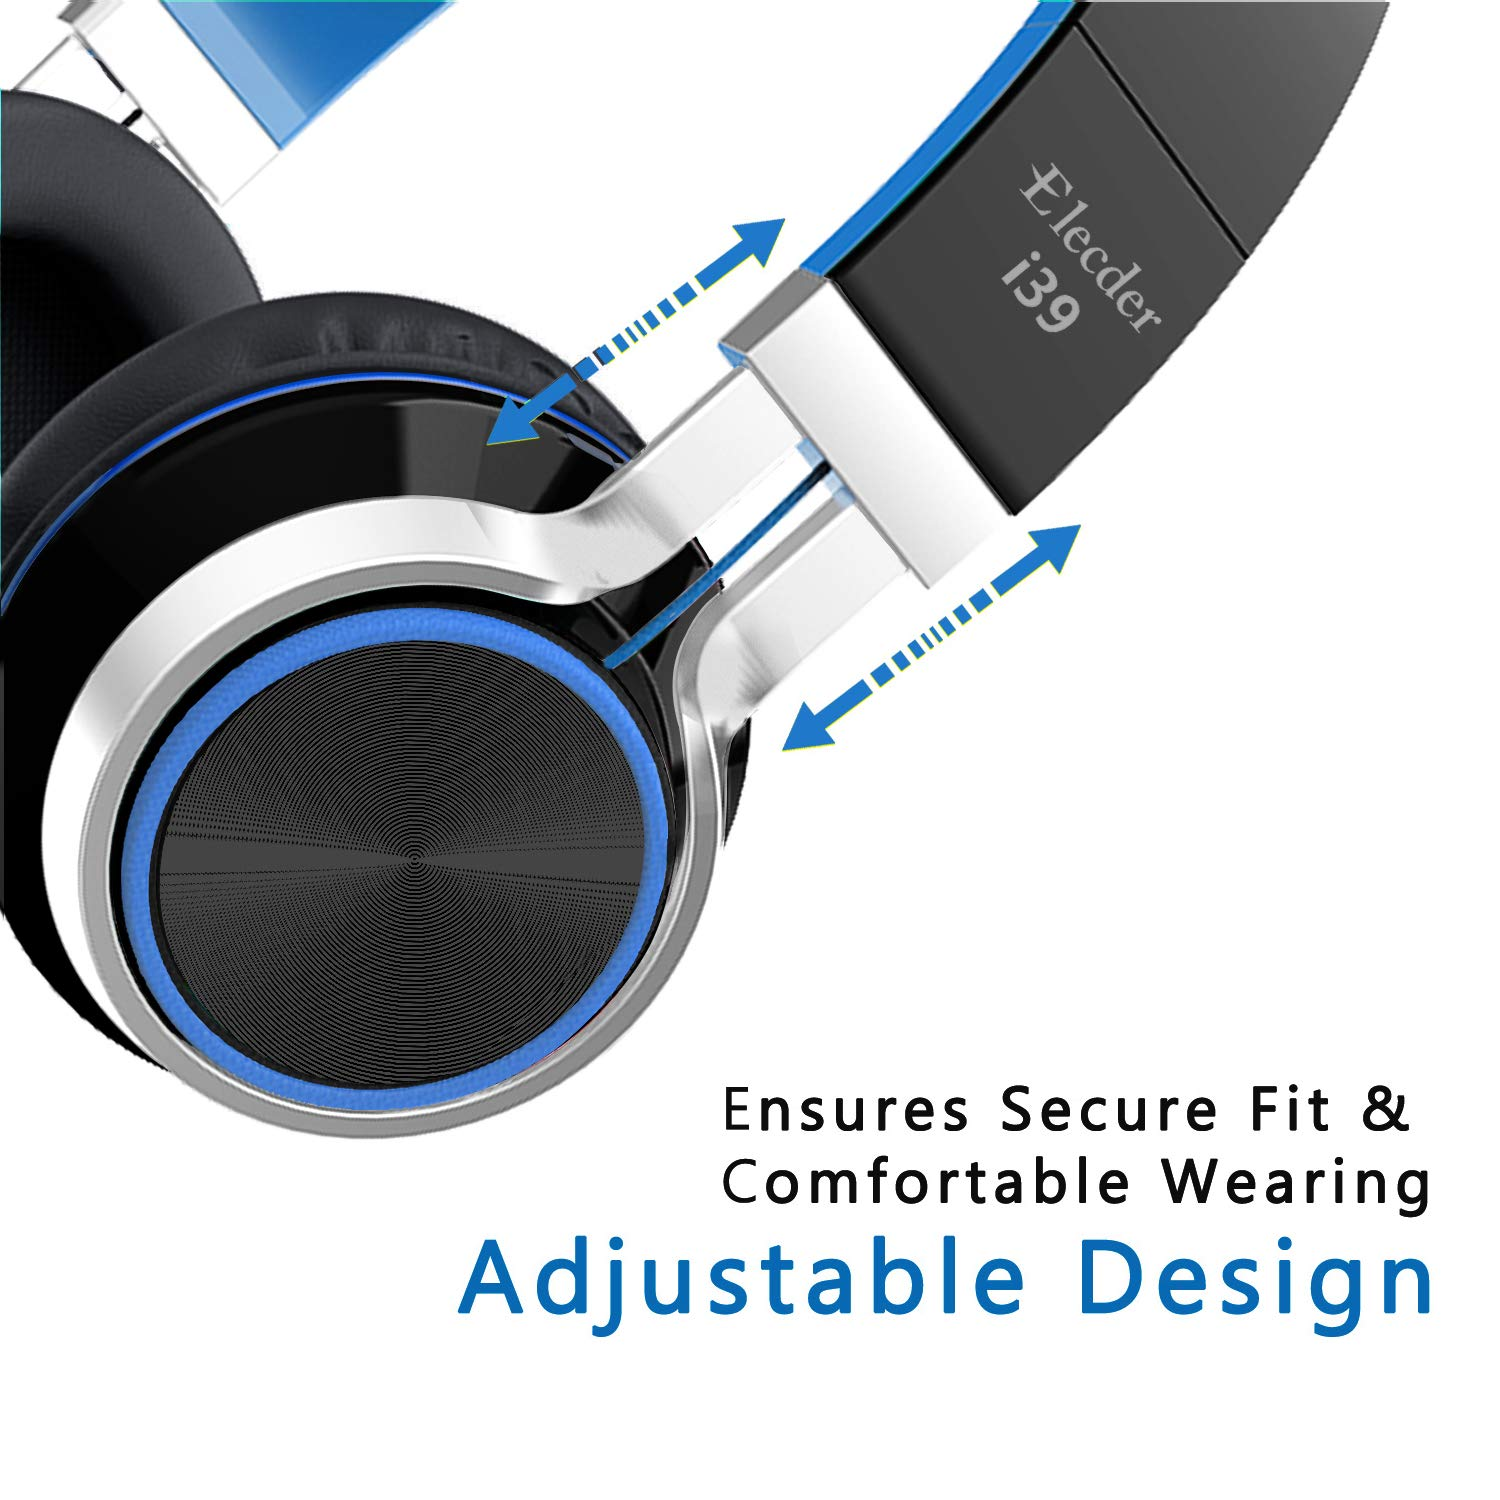 Elecder i39 Headphones with Microphone Kids Children Girls Boys Teens Foldable Adjustable Wired On Ear Headsets Compatible iPad Cellphones Computer MP3/4 Blue/Black by ELECDER (Image #5)